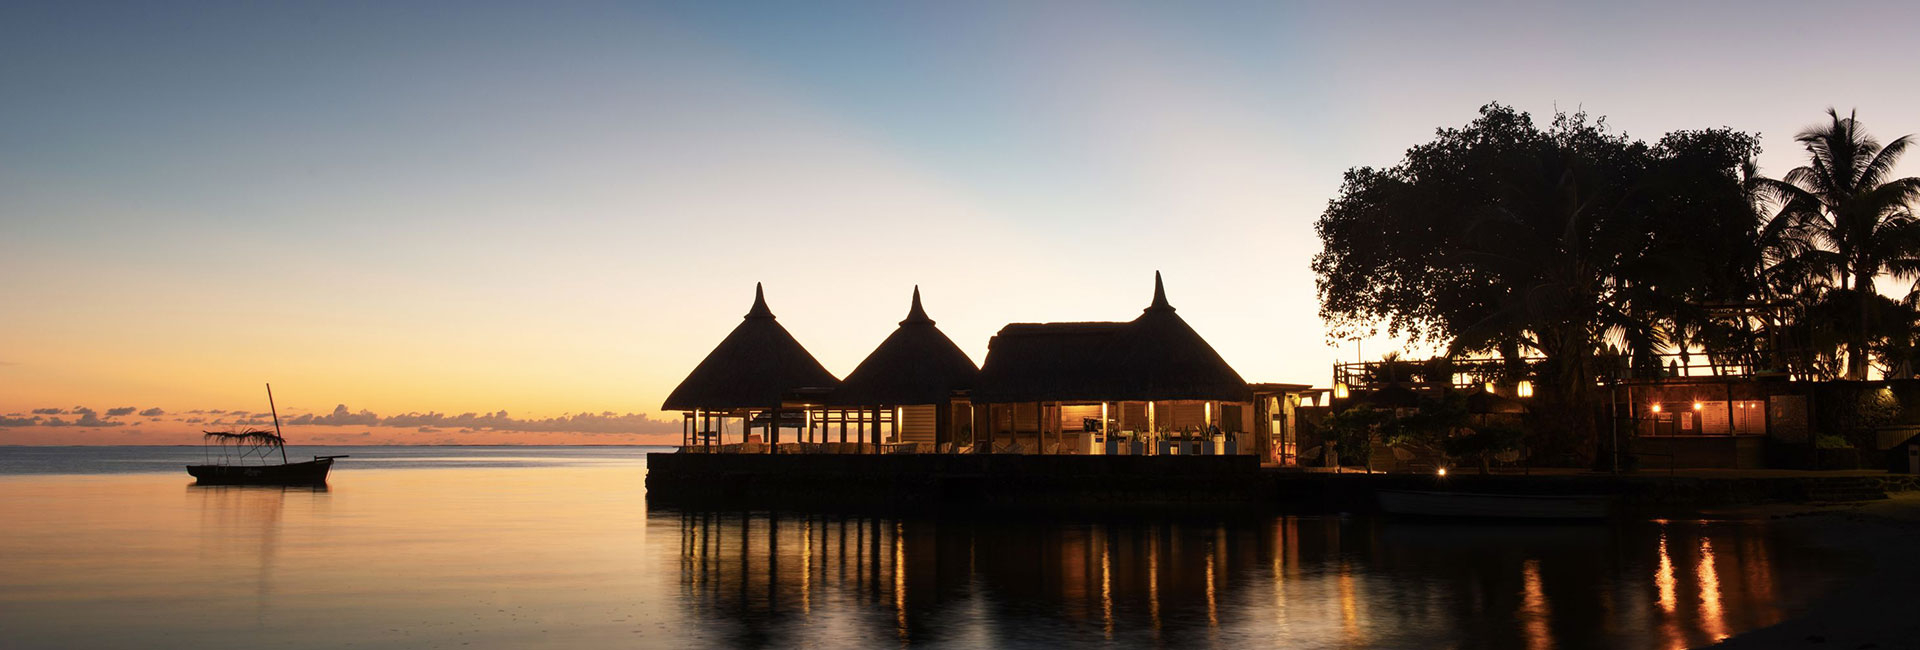 Couple Hotel for honeymooners in Mauritius